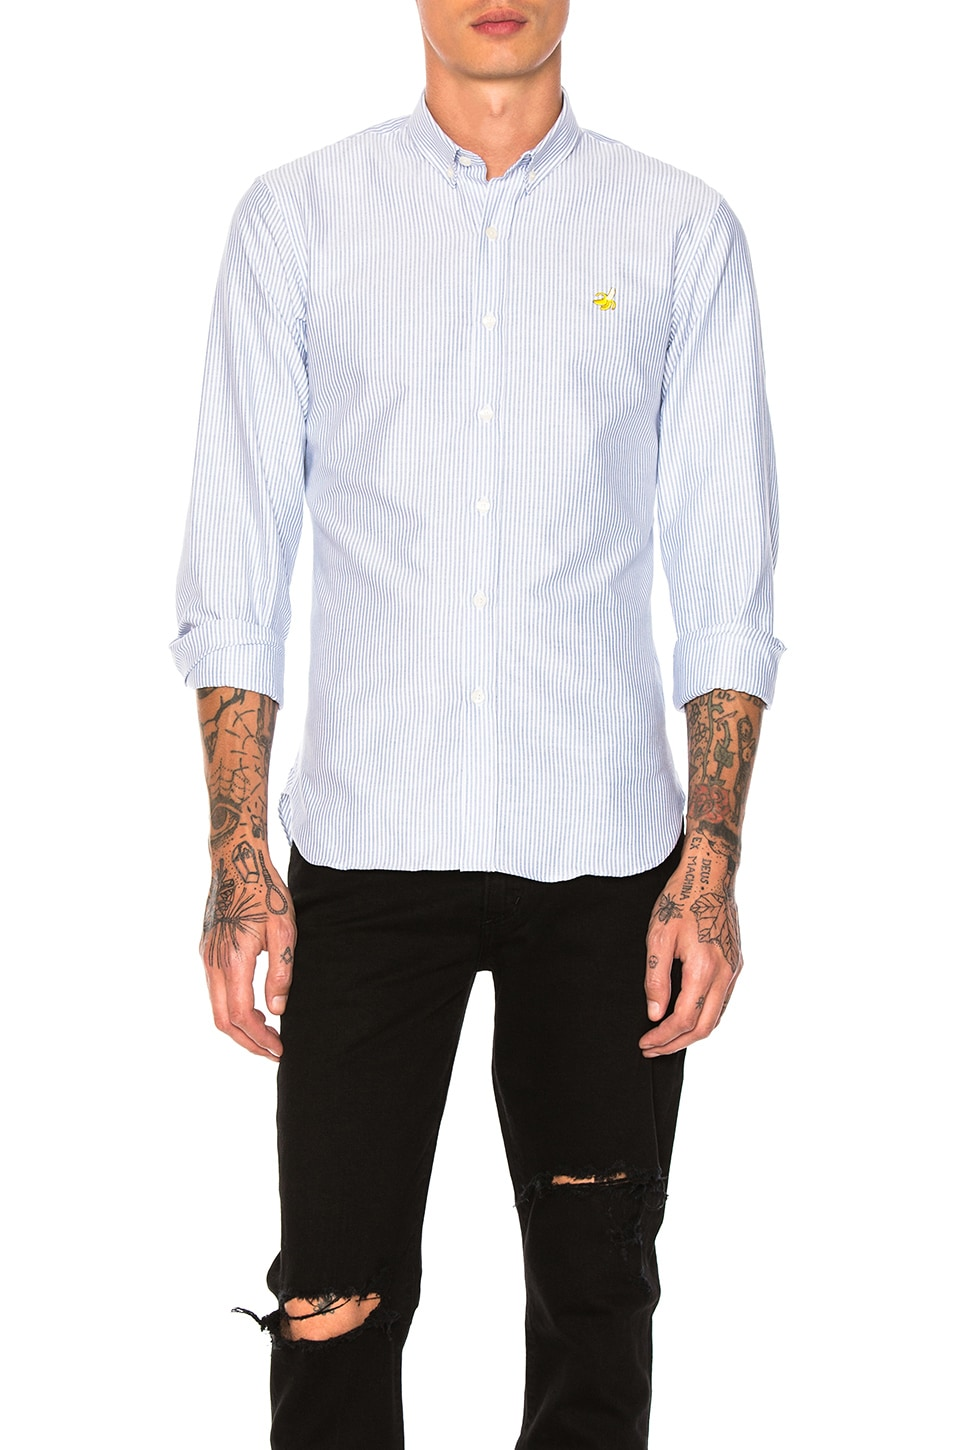 Banana Button Down by Maison Labiche